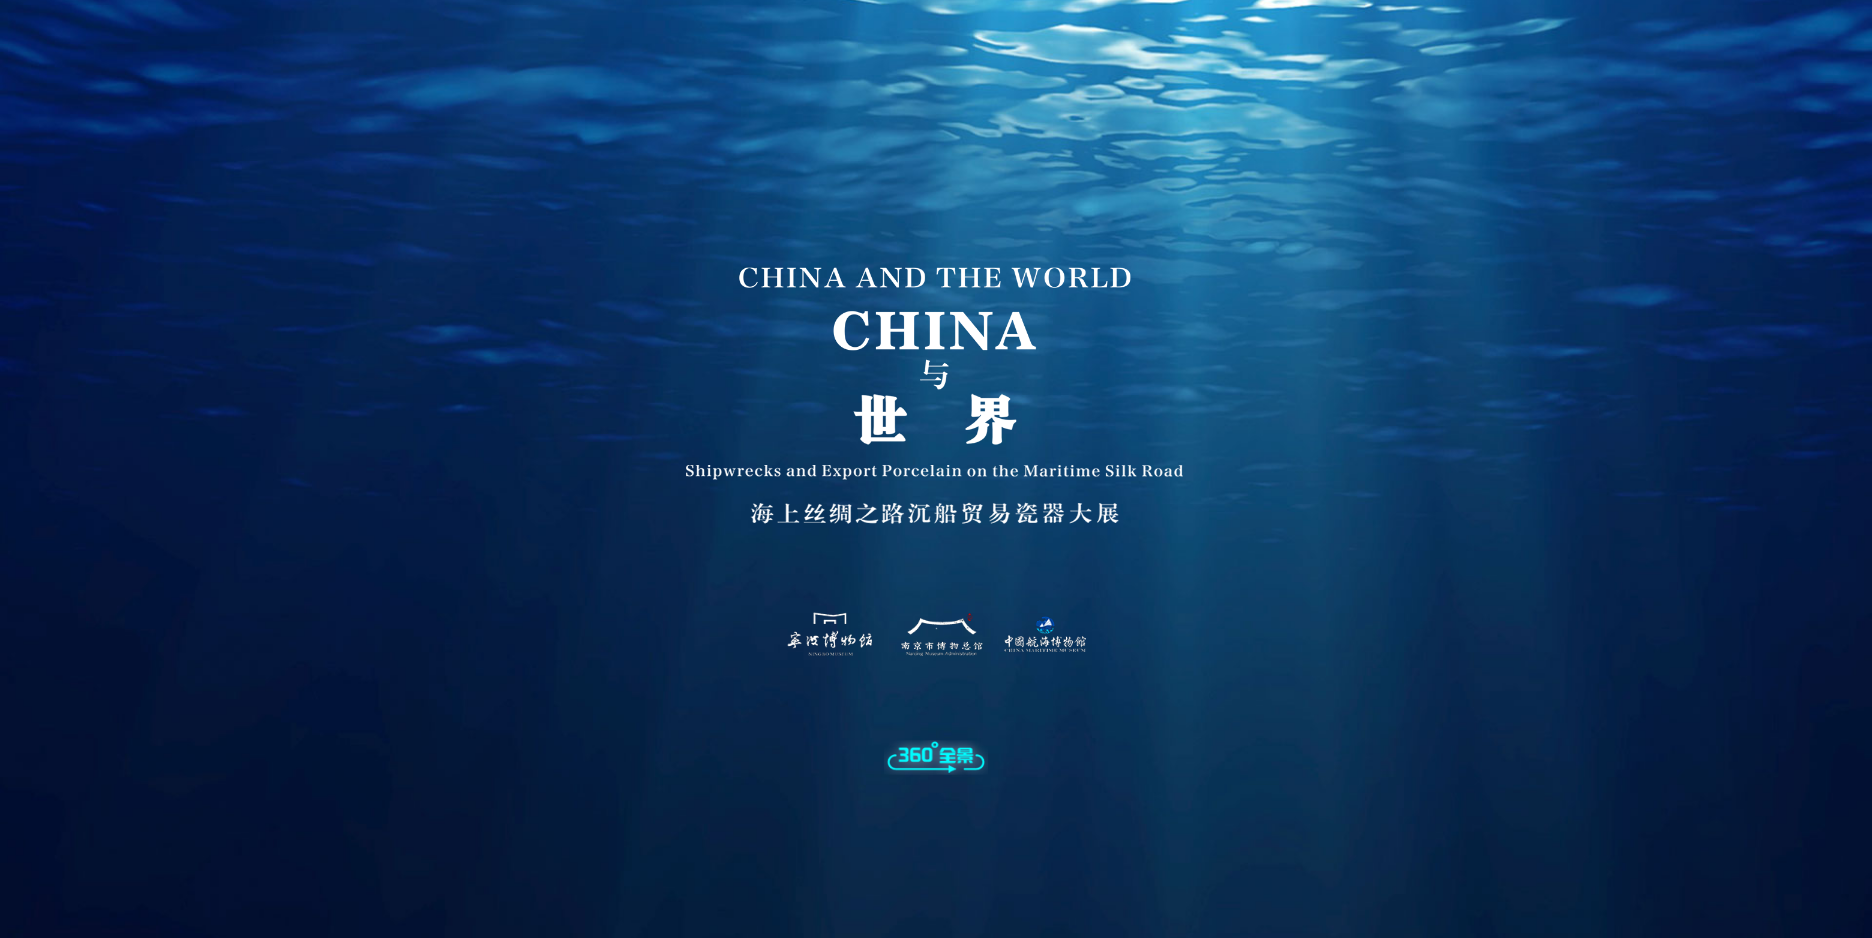 China and the World: Shipwrecks and Export Porcelain on the Maritime Silk Road